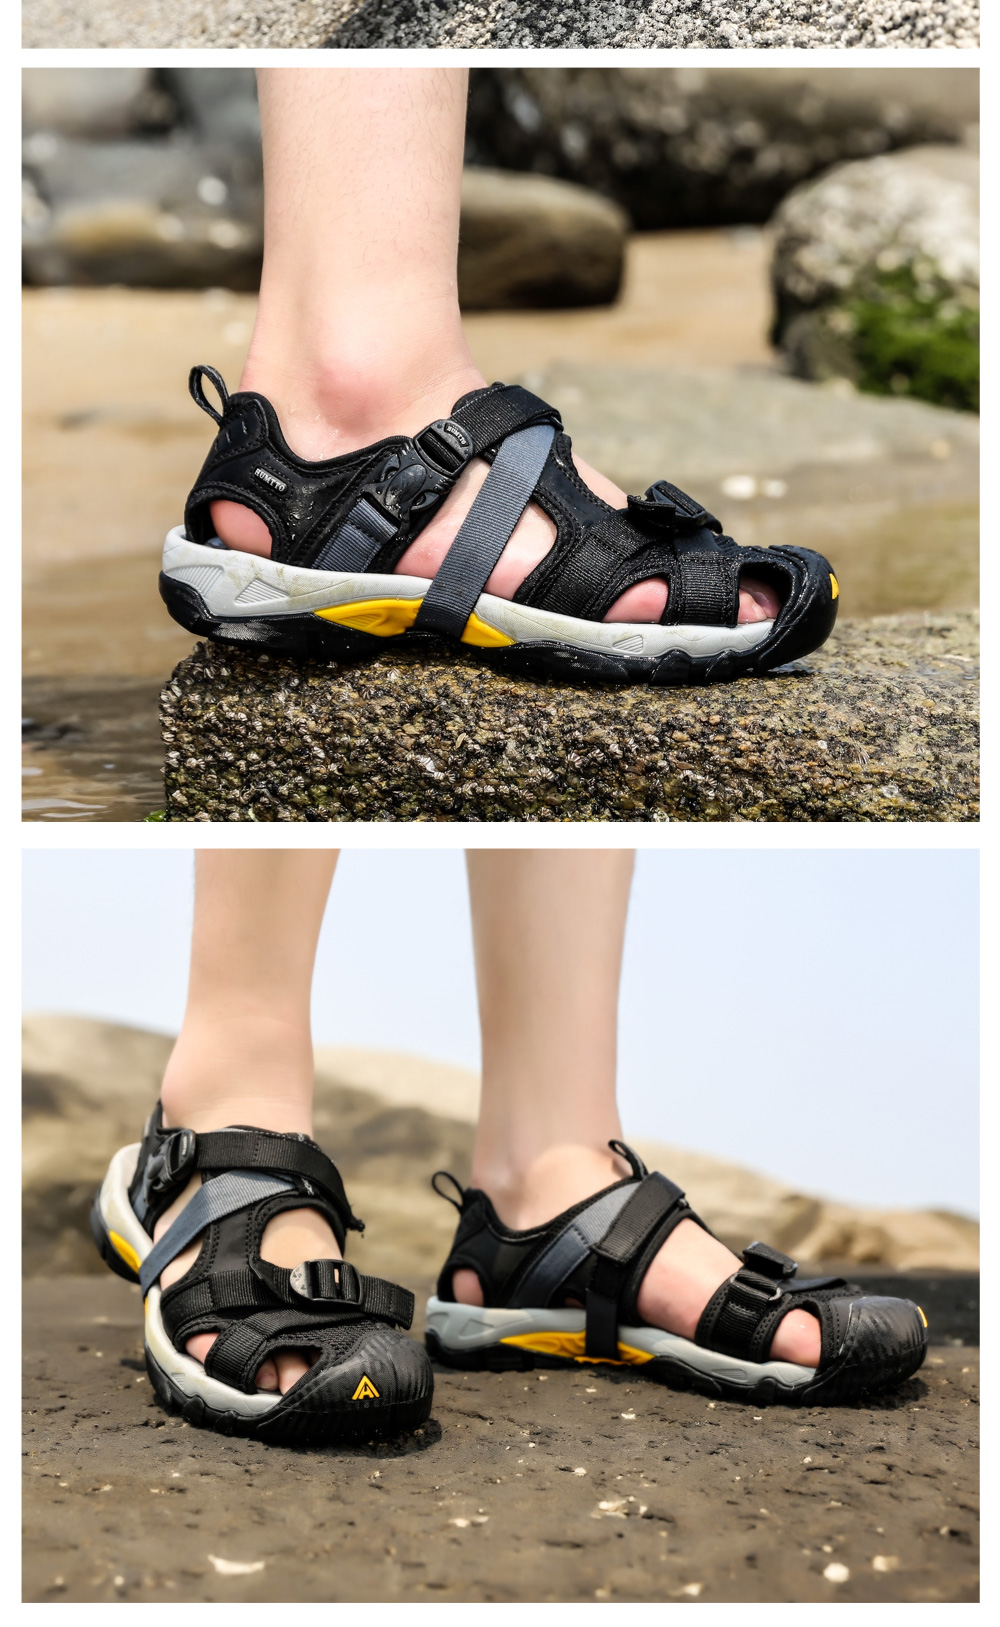 HTB1HnNQcECF3KVjSZJnq6znHFXaH - Brand Sandals Men New Mens Casual Outdoor Non-slip Wear-resistant Breathable Mesh Skynet Lightweight Mens Summer Shoes